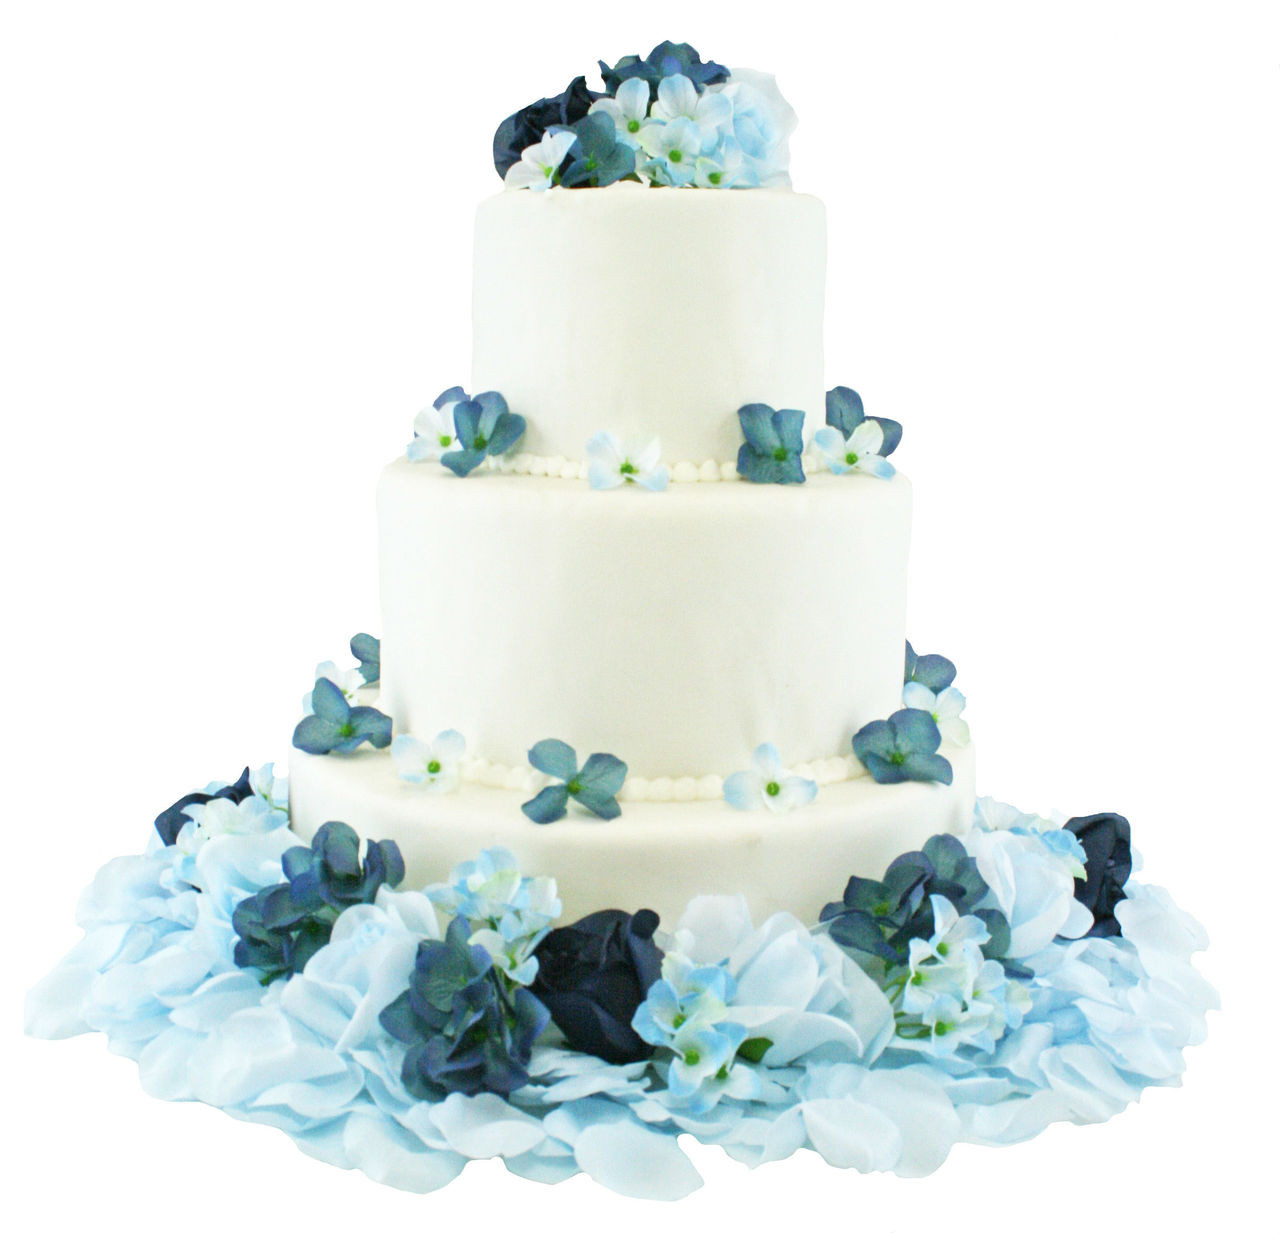 Navy Light Beach Blue Hydrangea Rose Flower Cake Toppers Silk Flowers For Cake Wedding Cake Flowers Decorations Beautiful Wedding Cakes With